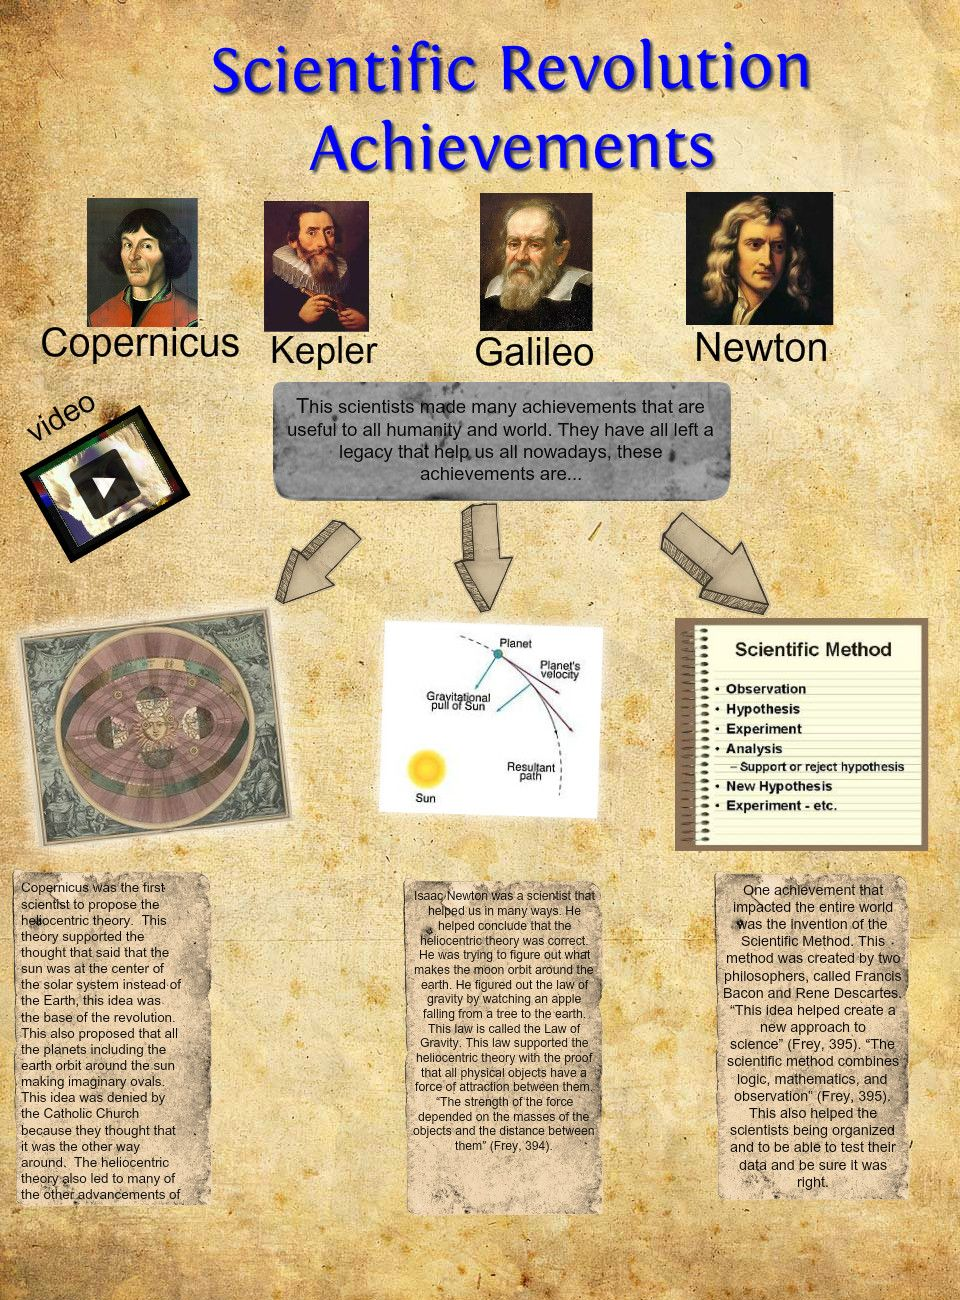 the scientific revolution The scientific revolution resulted from a monumental series of discoveries, especially those in astronomy and related fields, in the 16th and 17th centuries.